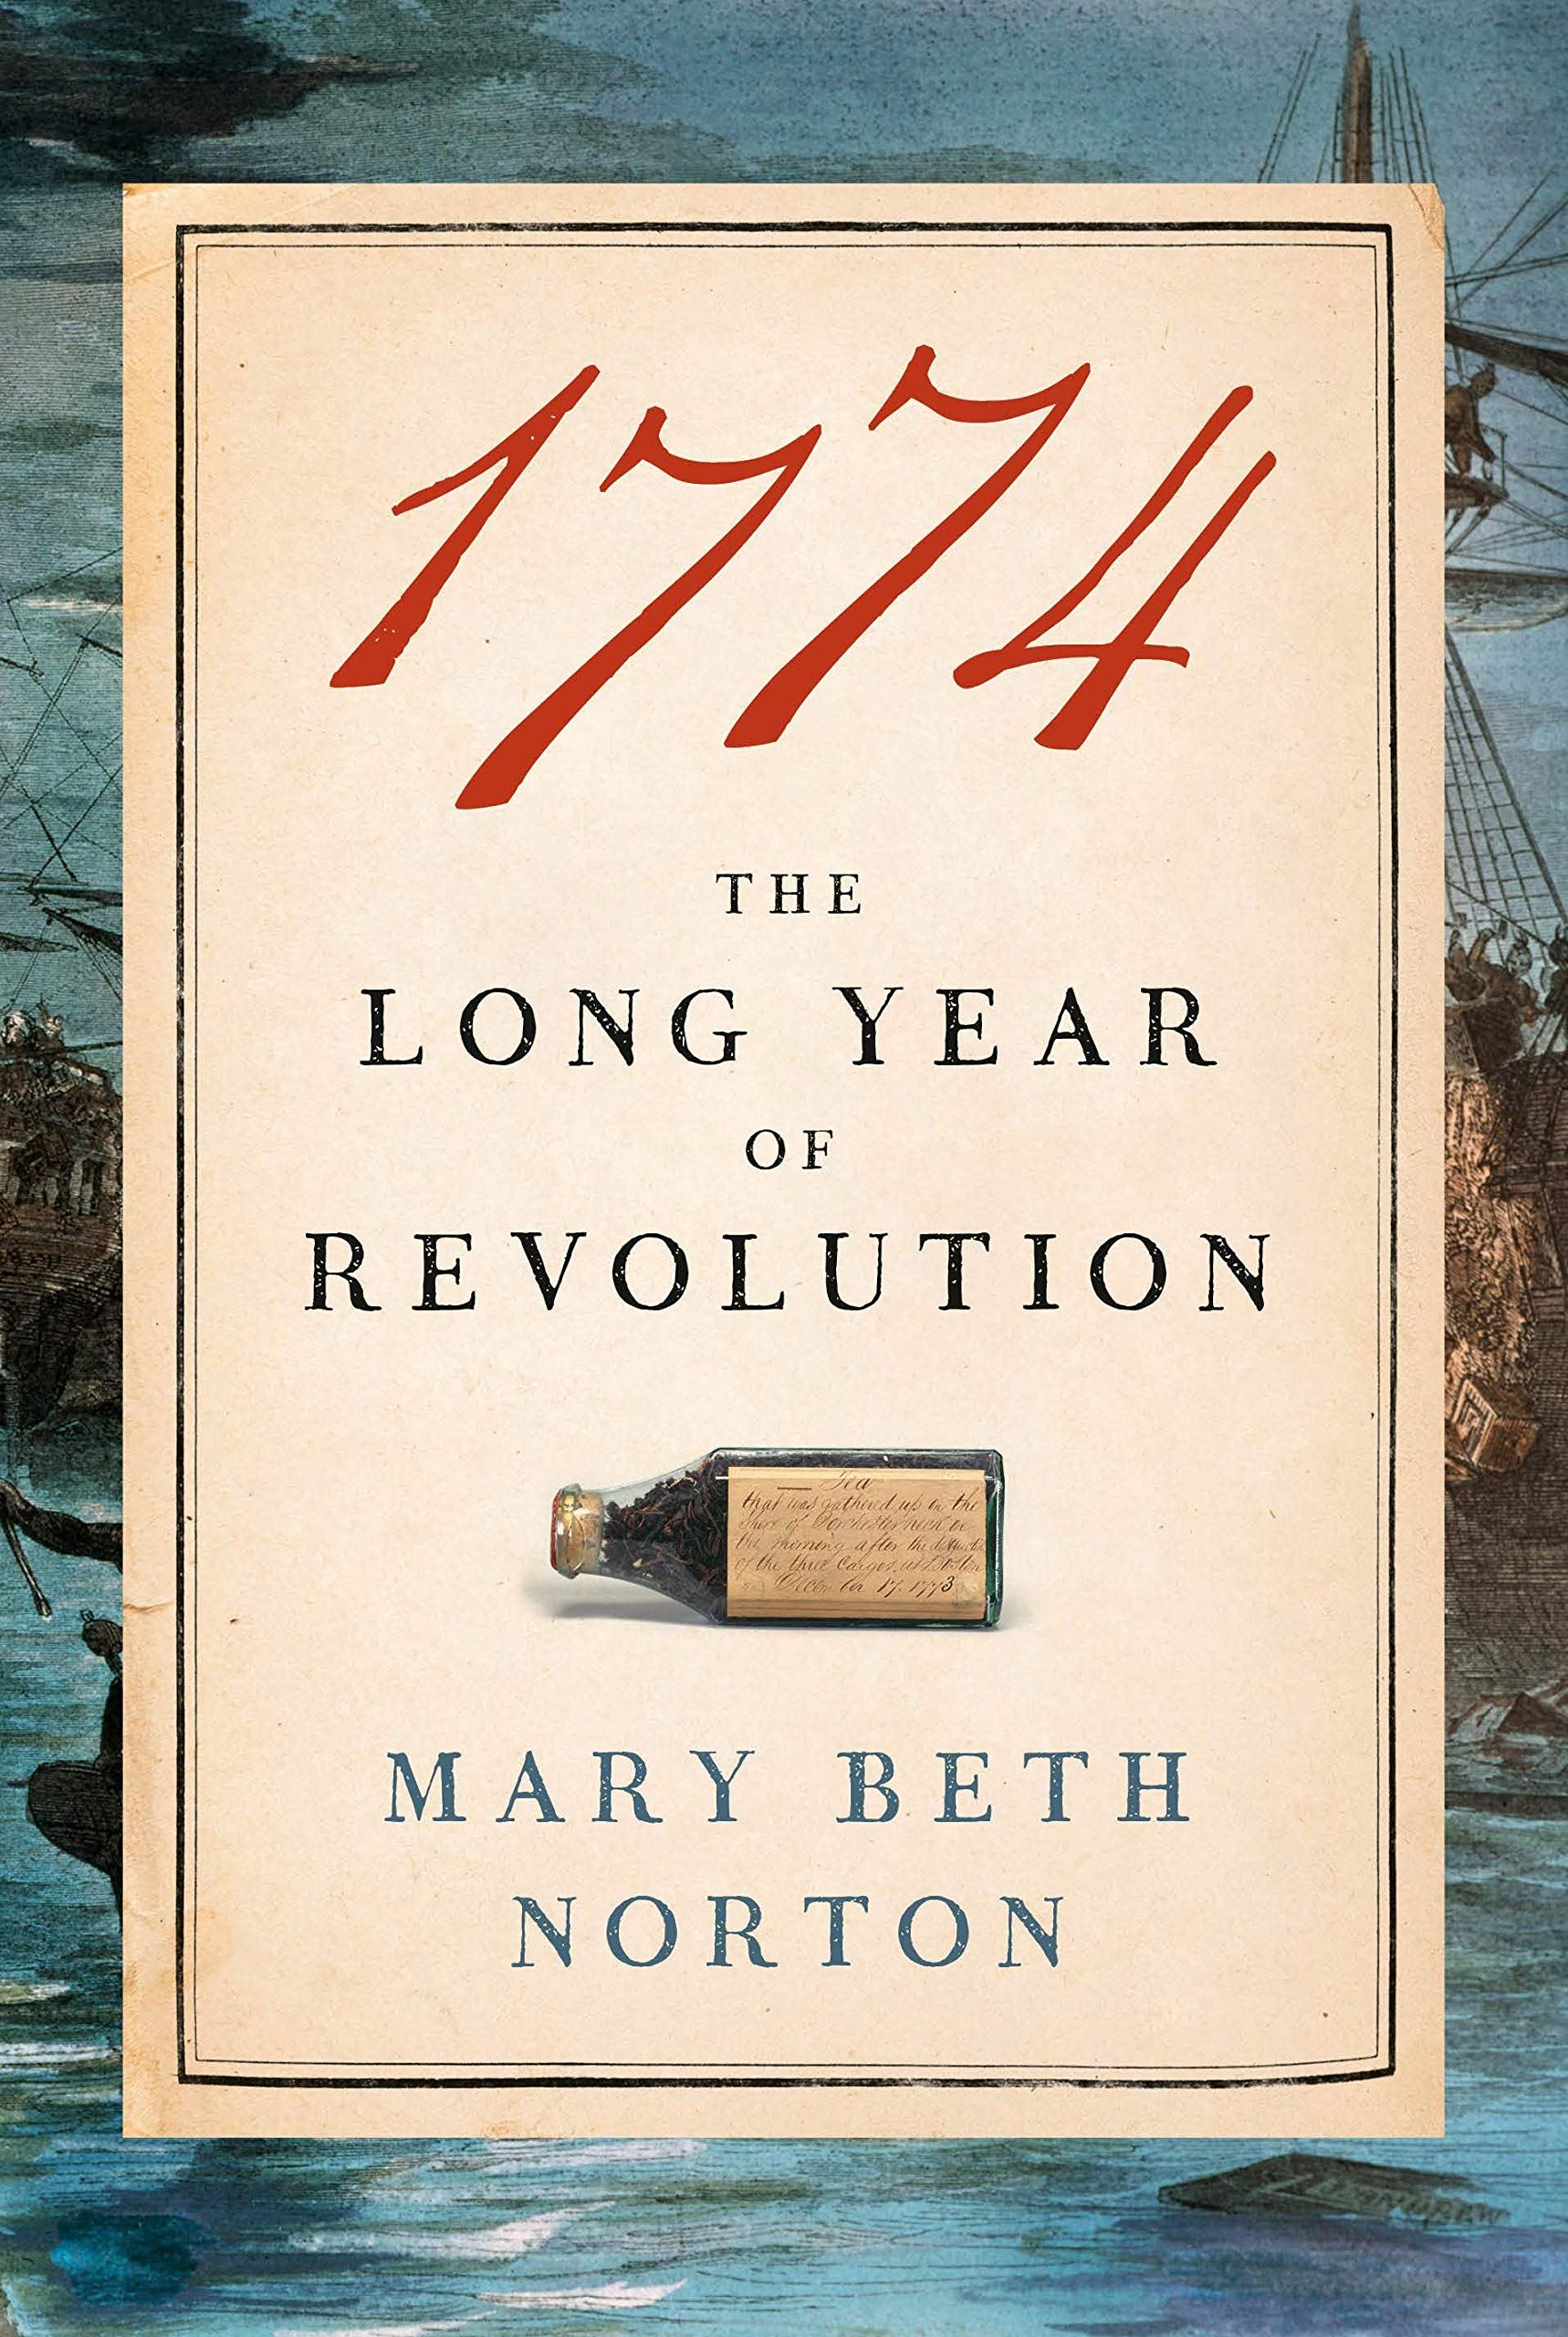 1774 - The Long Year of Revolution - Mary Beth Norton